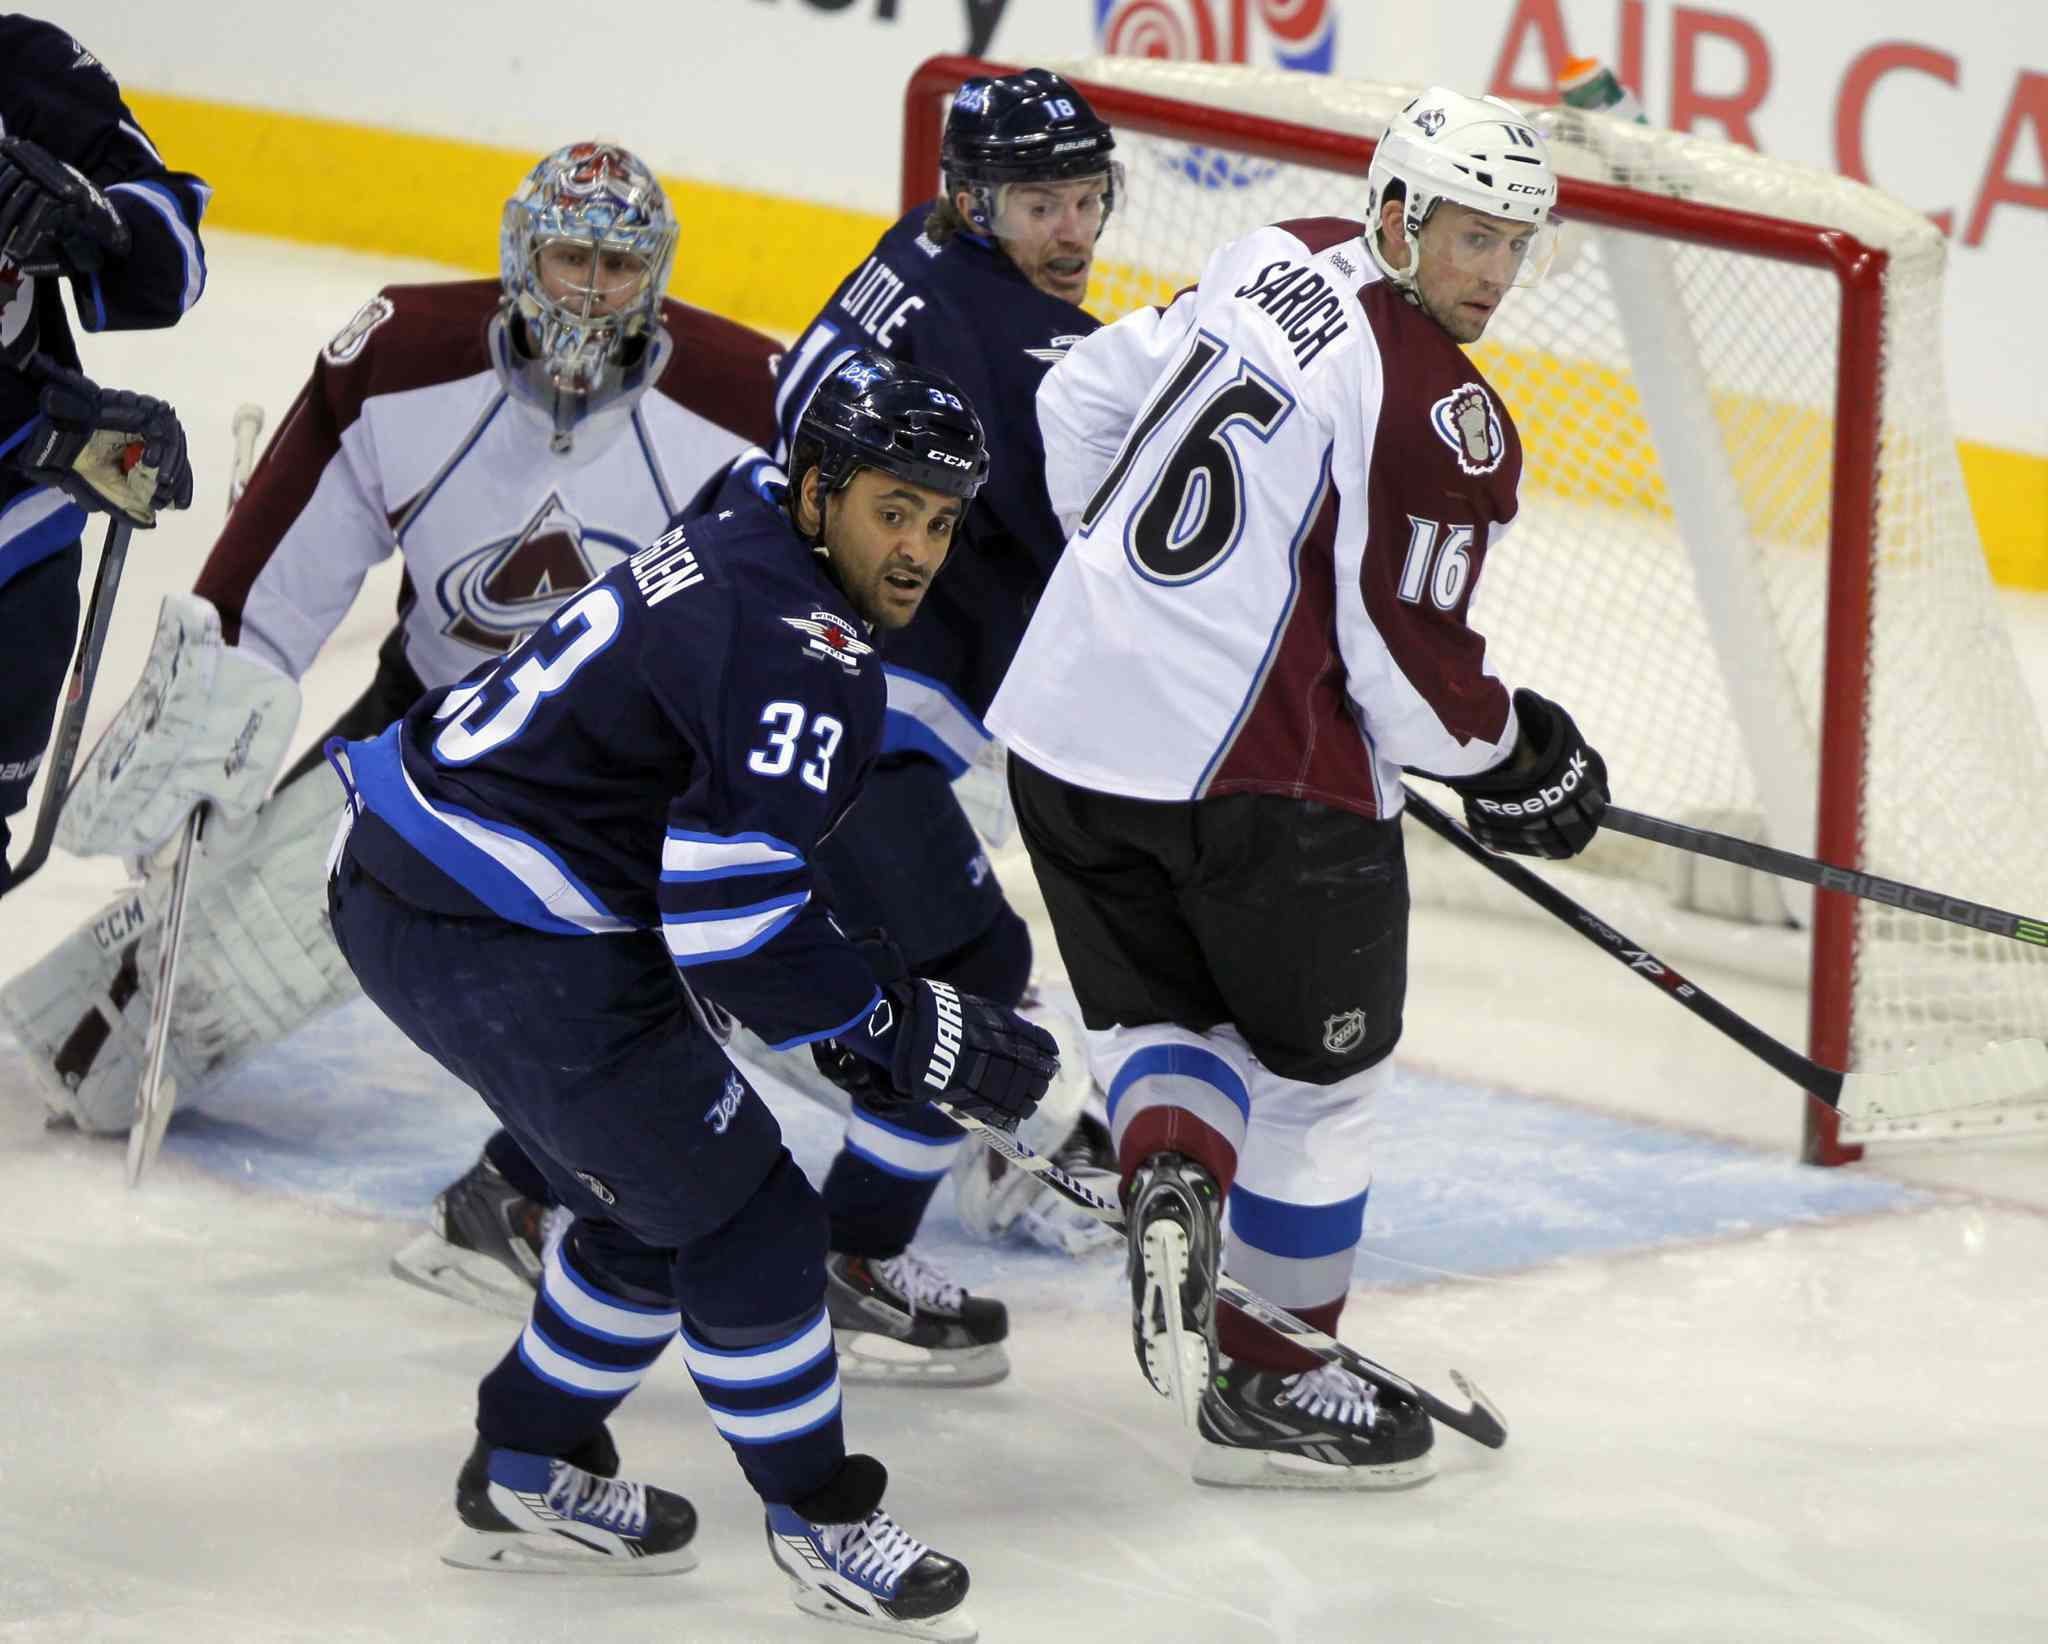 From left: Semyon Varlamov, Dustin Byfuglien, Bryan Little and Cory Sarich track the puck in the first period.